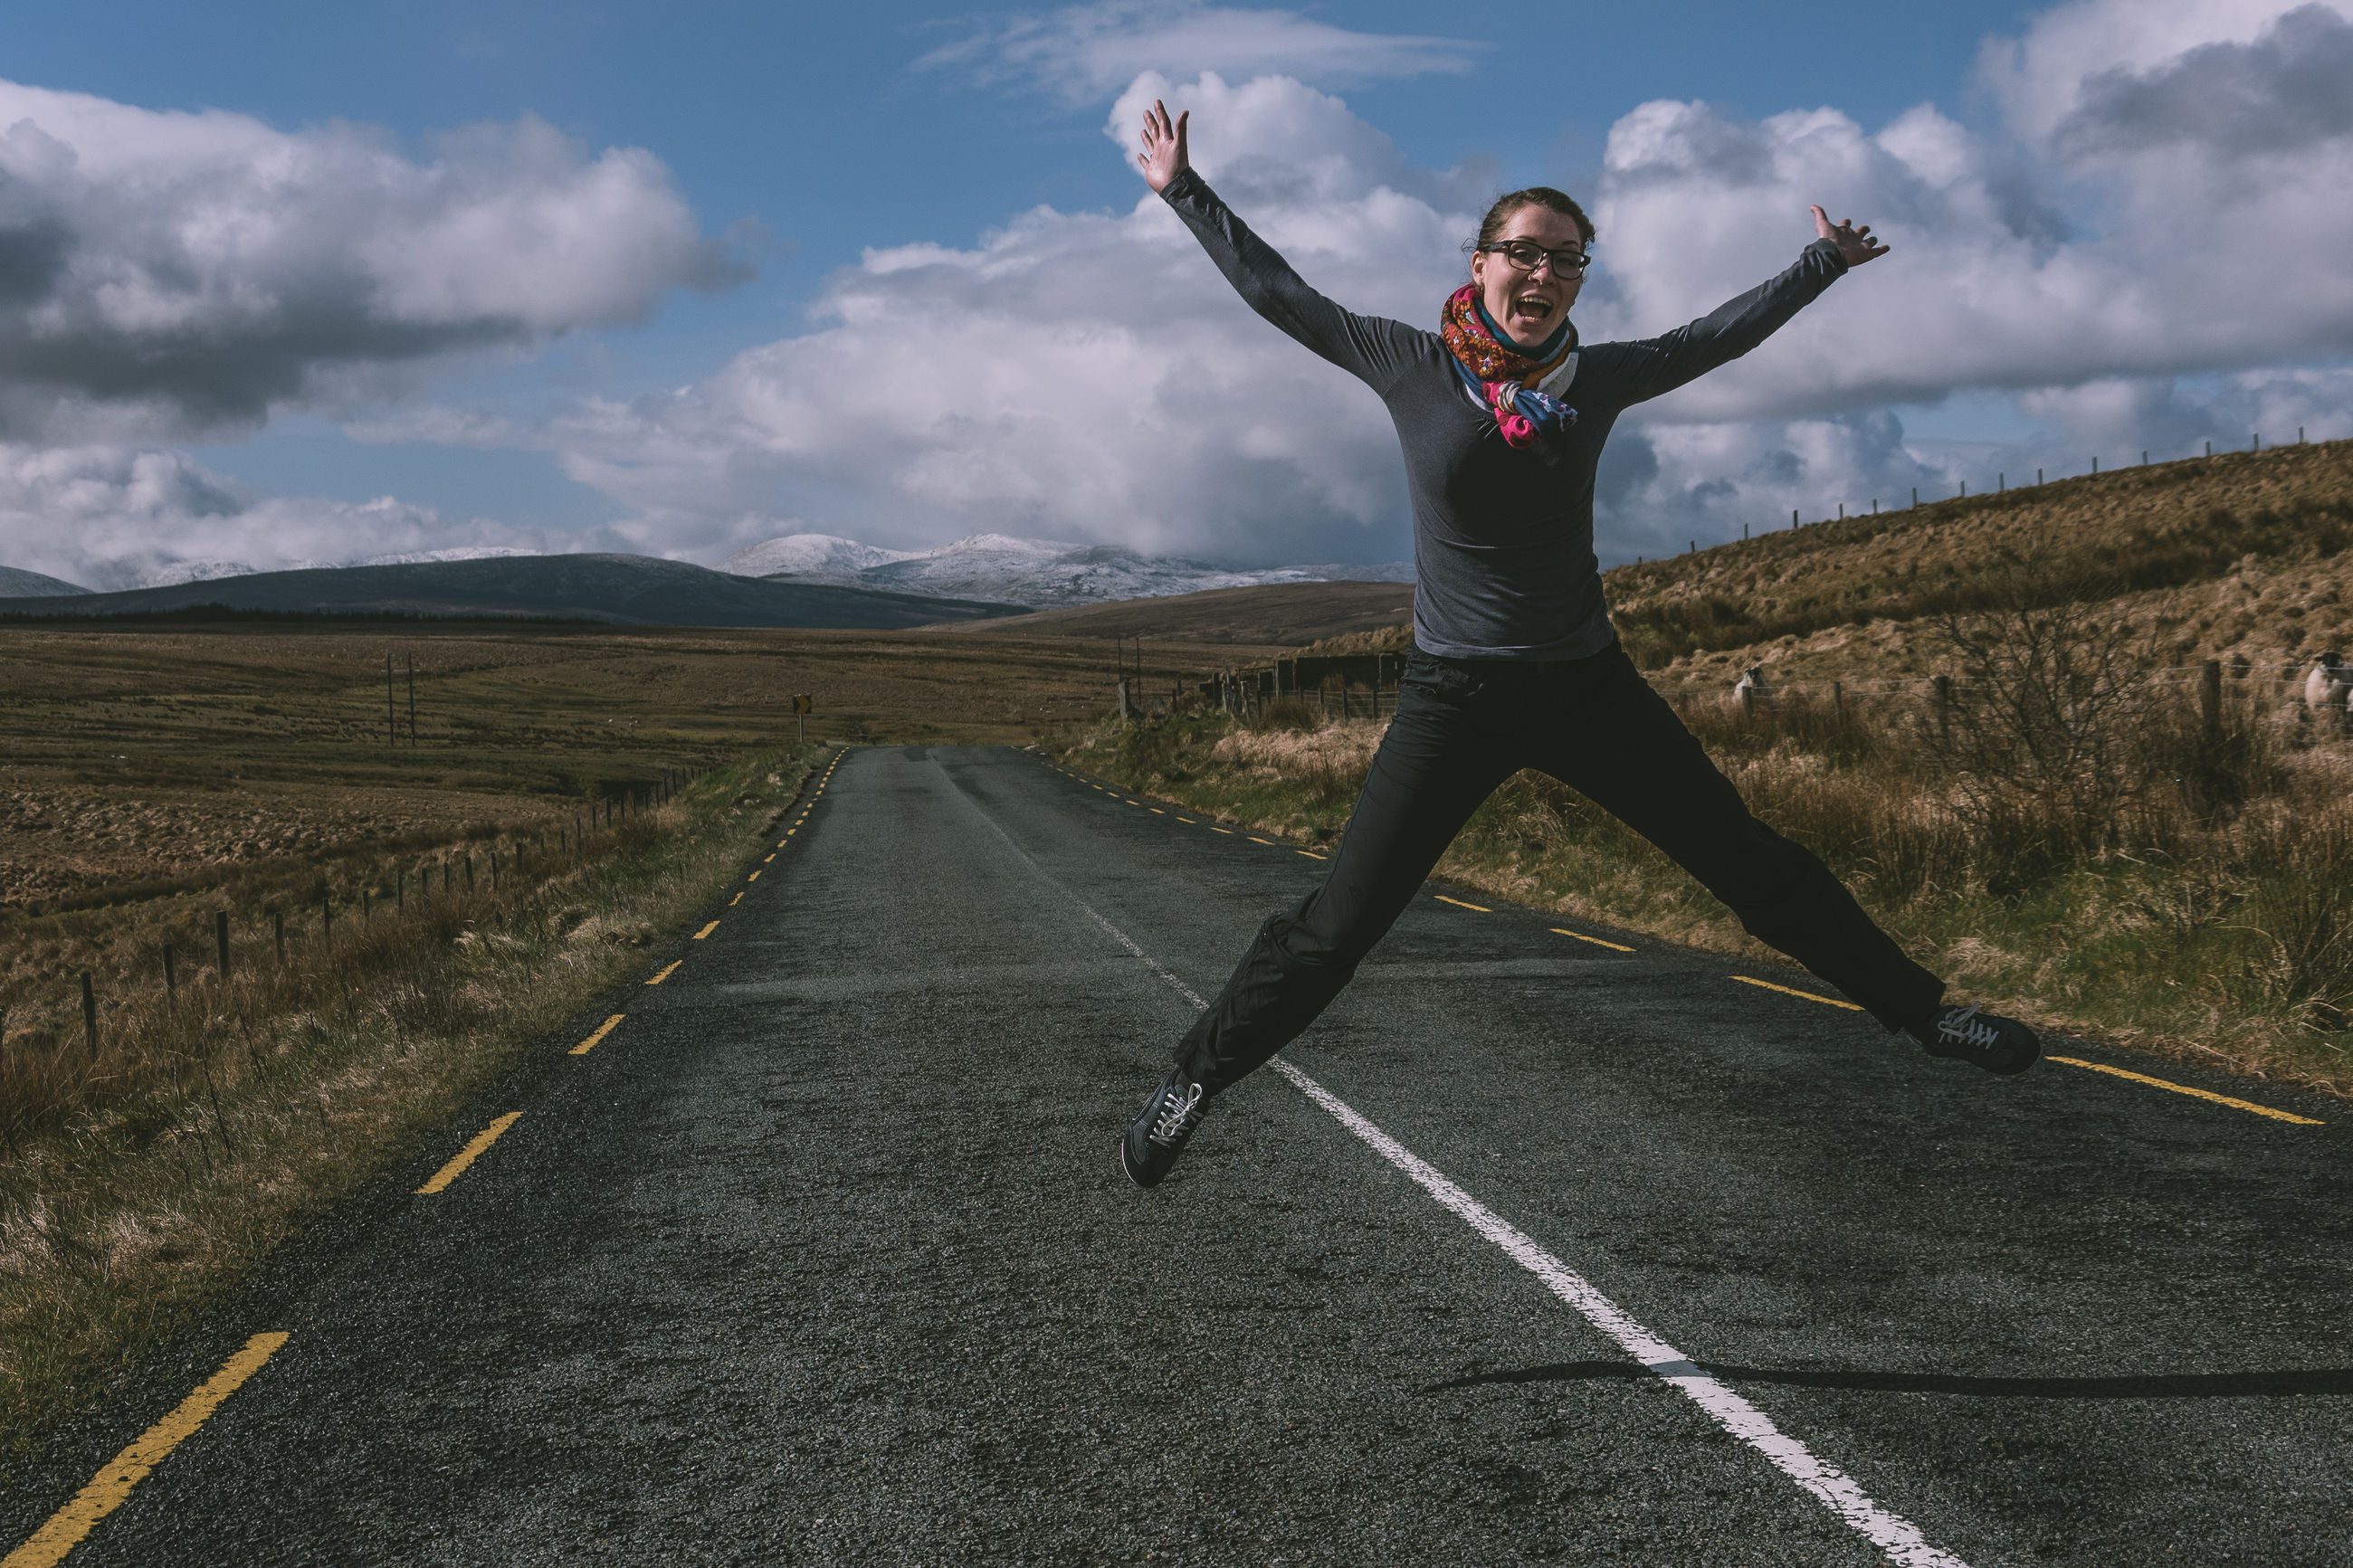 Playful woman jumping with arms outstretched on road against mountains